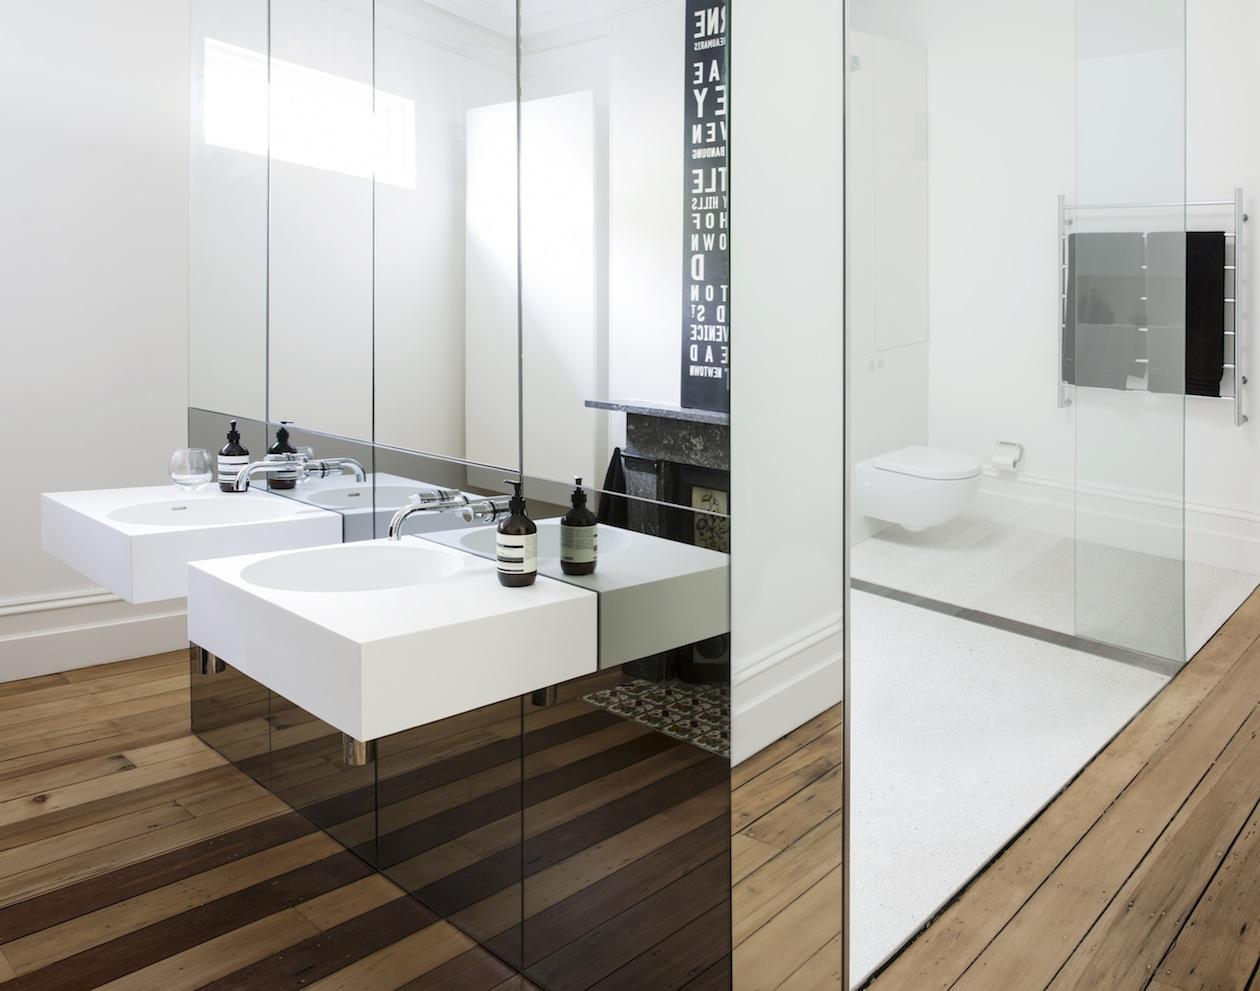 2015 tida architect designed bathrooms Design bathroom online australia